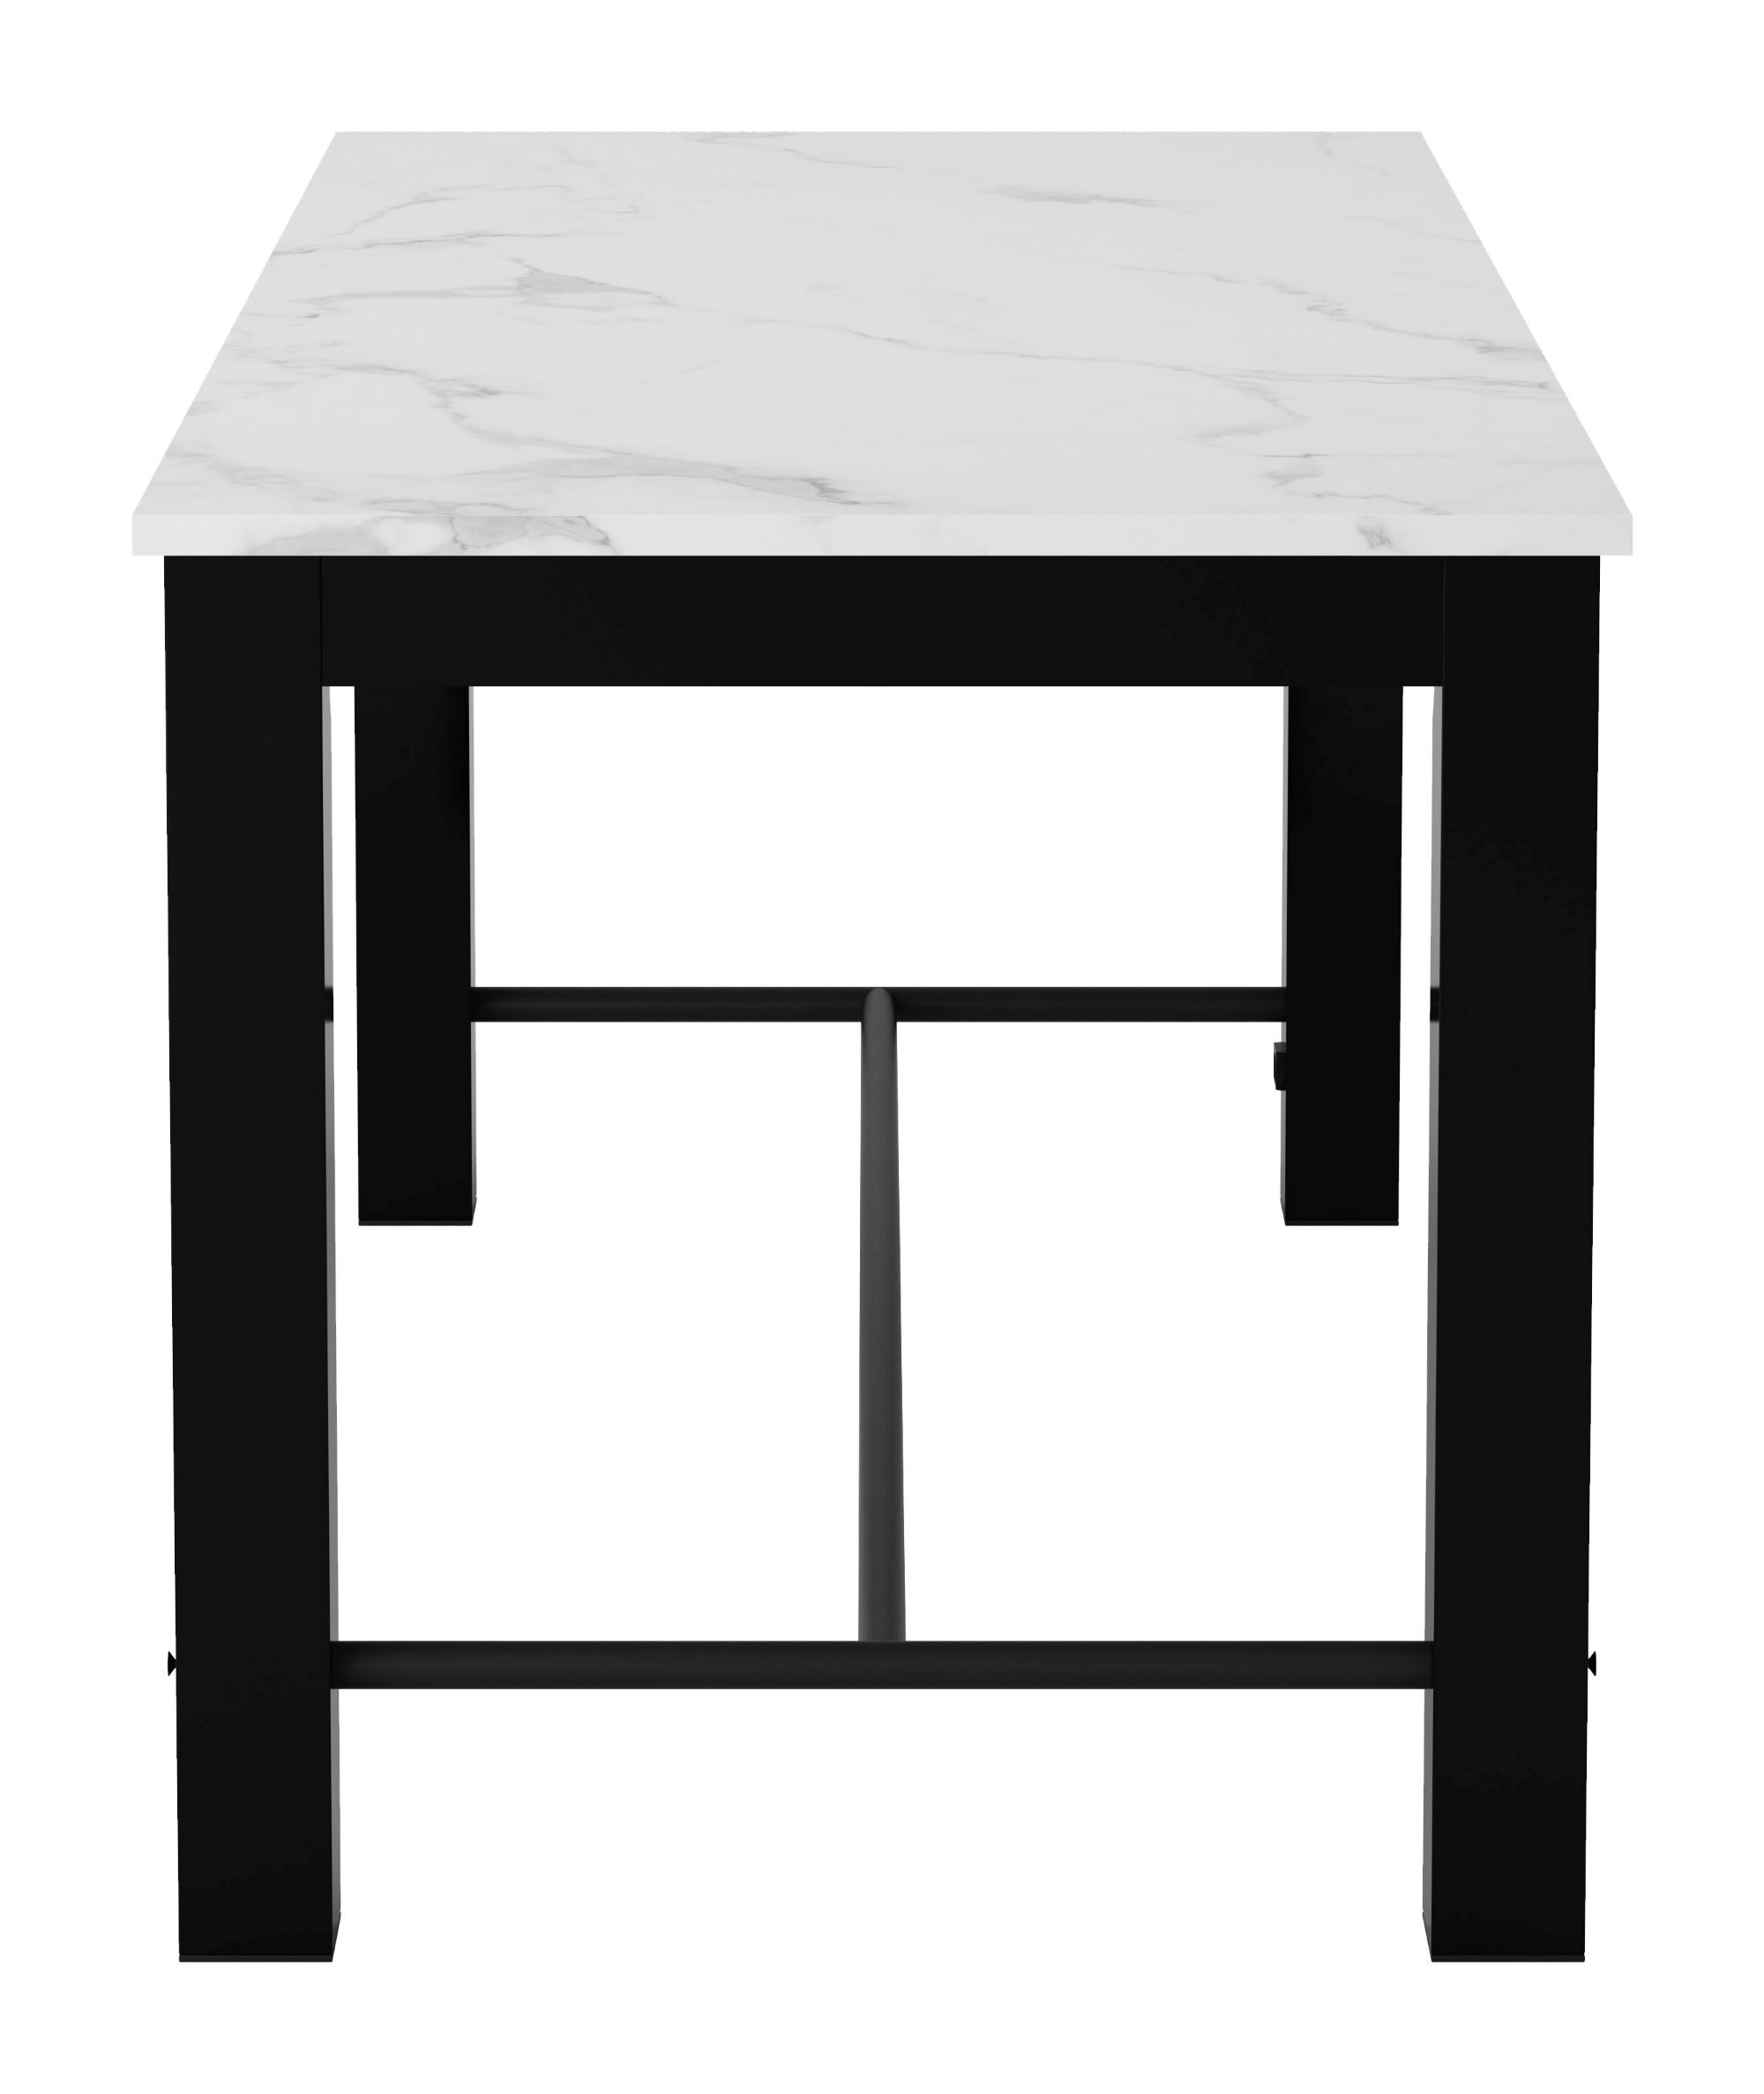 Recent Zuo Modern Dawson Dining Table (Stone & Matte Black) – 100975 Throughout Dawson Dining Tables (View 16 of 25)